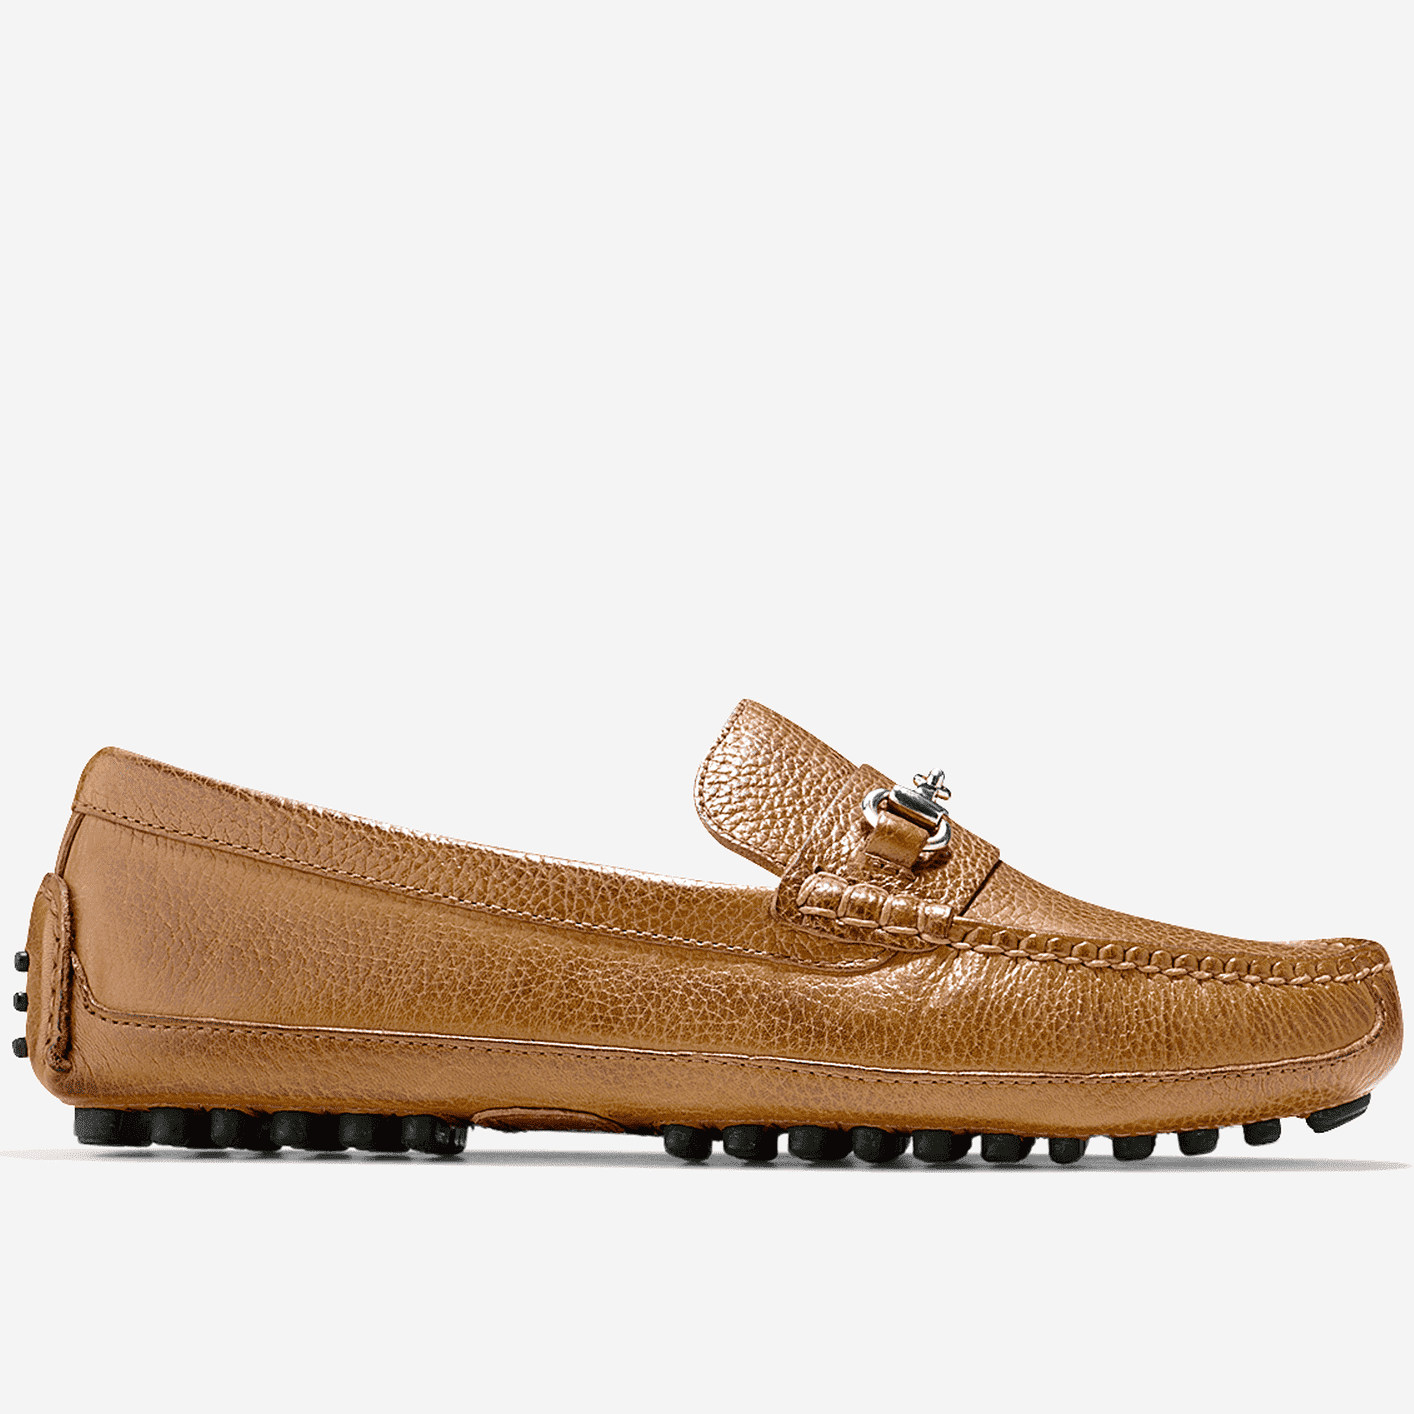 d06e0b3cc Cole Haan Grant Canoe Bit Loafer in Tan – Country Club Prep